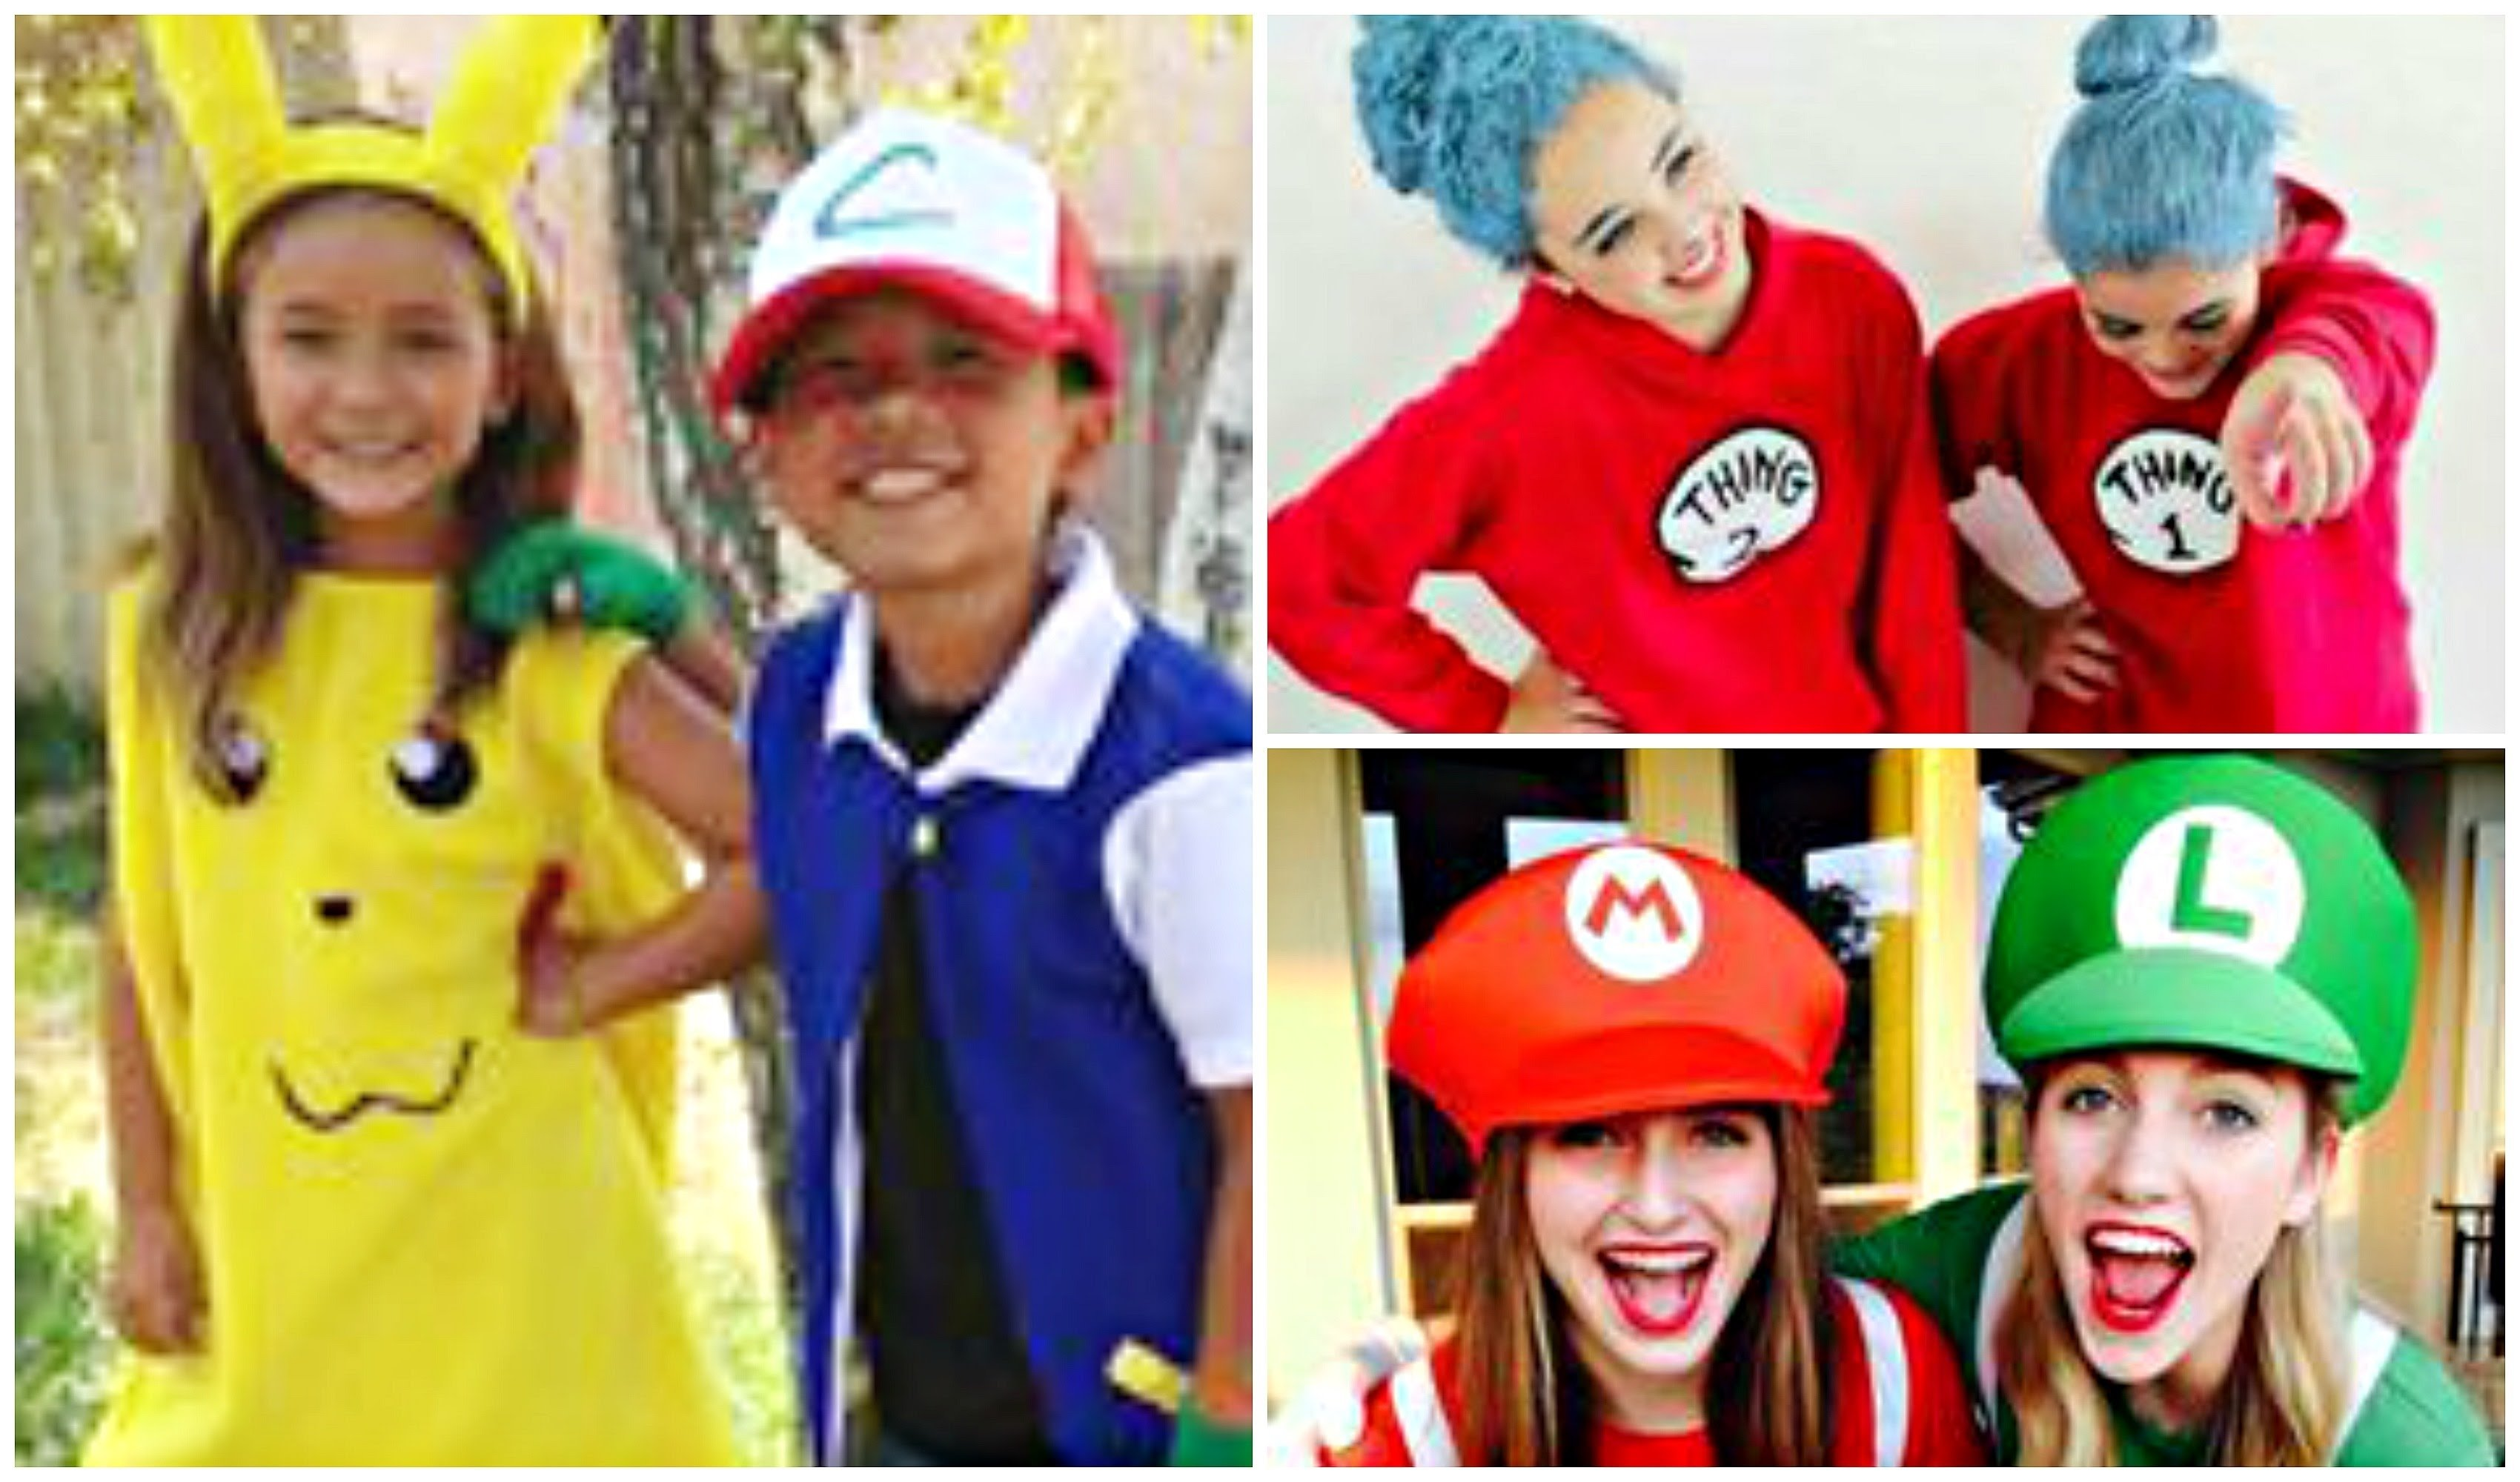 10 Spectacular Halloween Costume Ideas For Friends halloween costume ideas for true best friends youtube